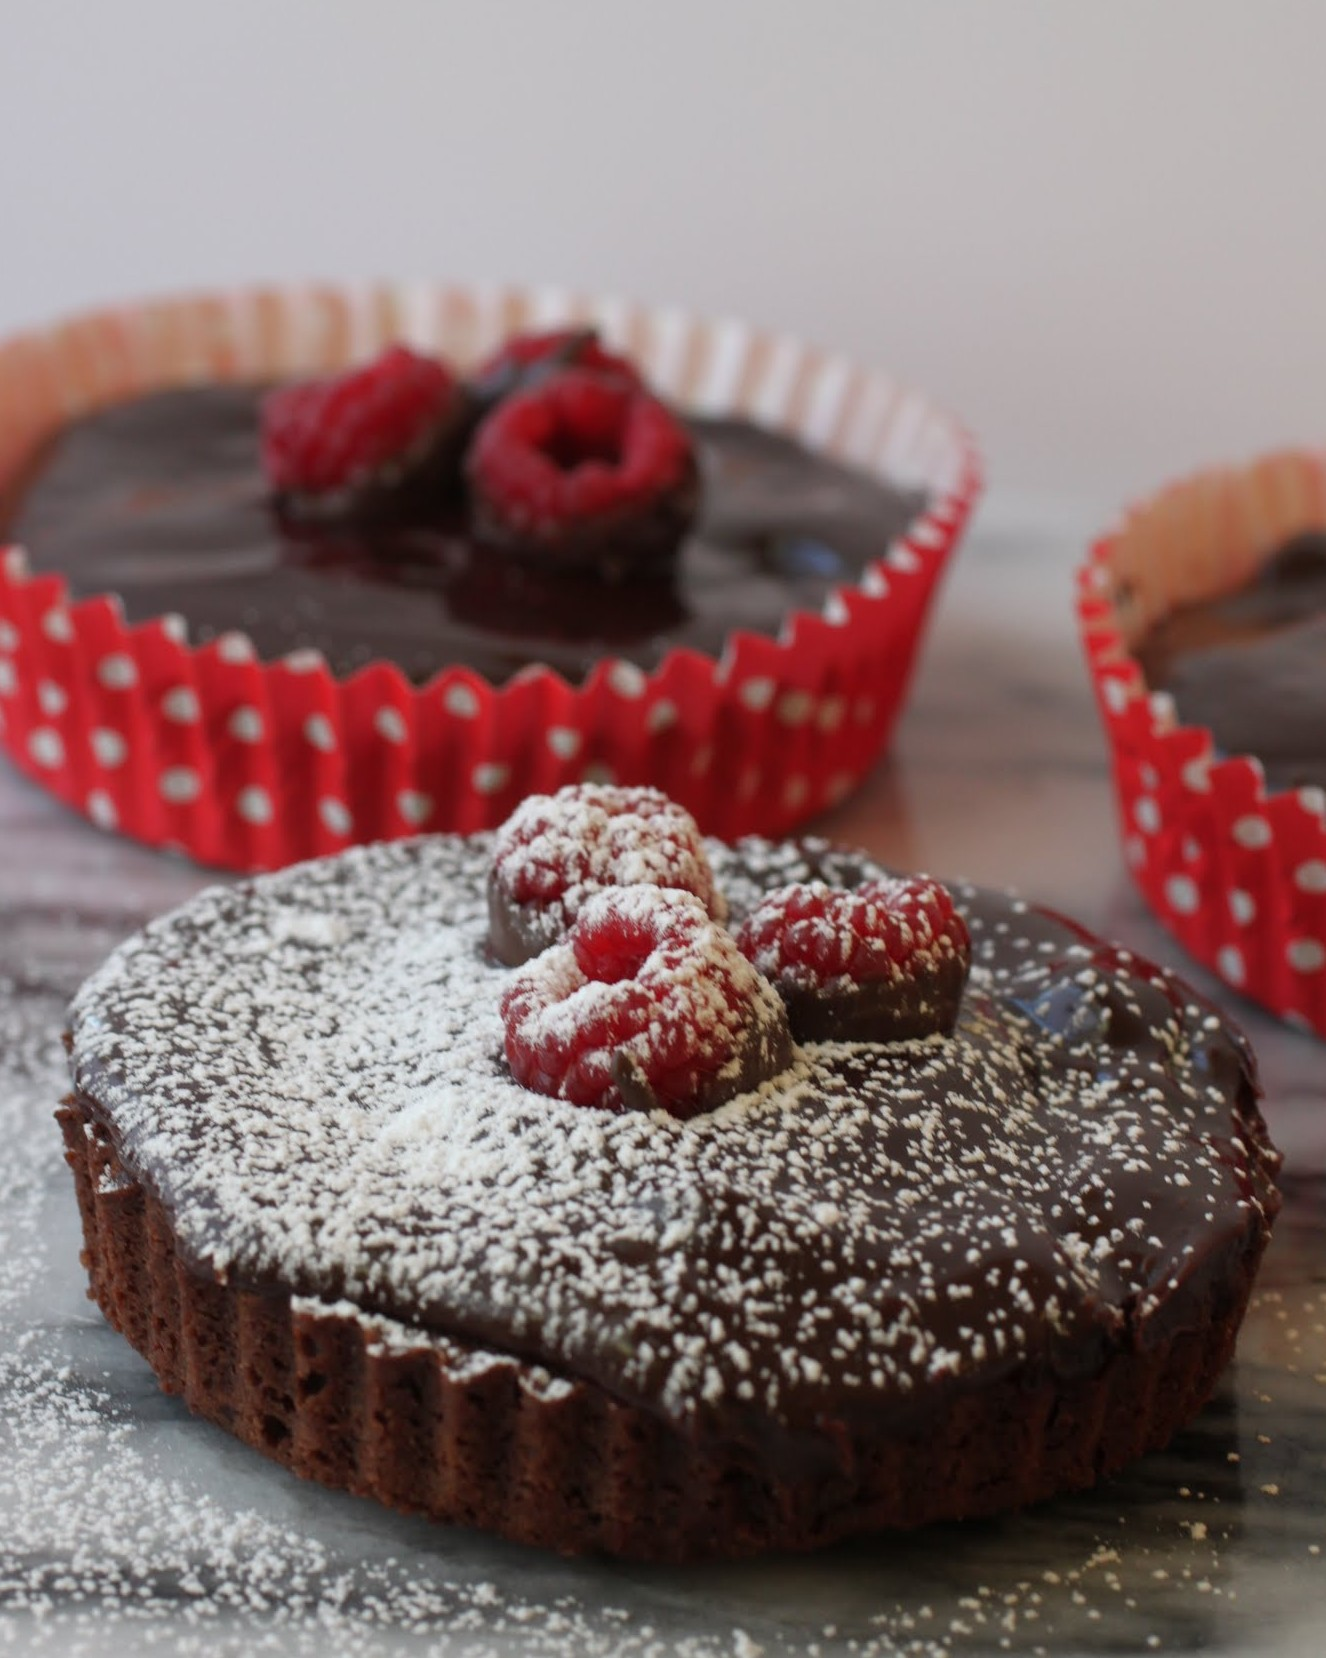 Chocolate Raspberry Ganache Brownie Mini-Torte (GF)